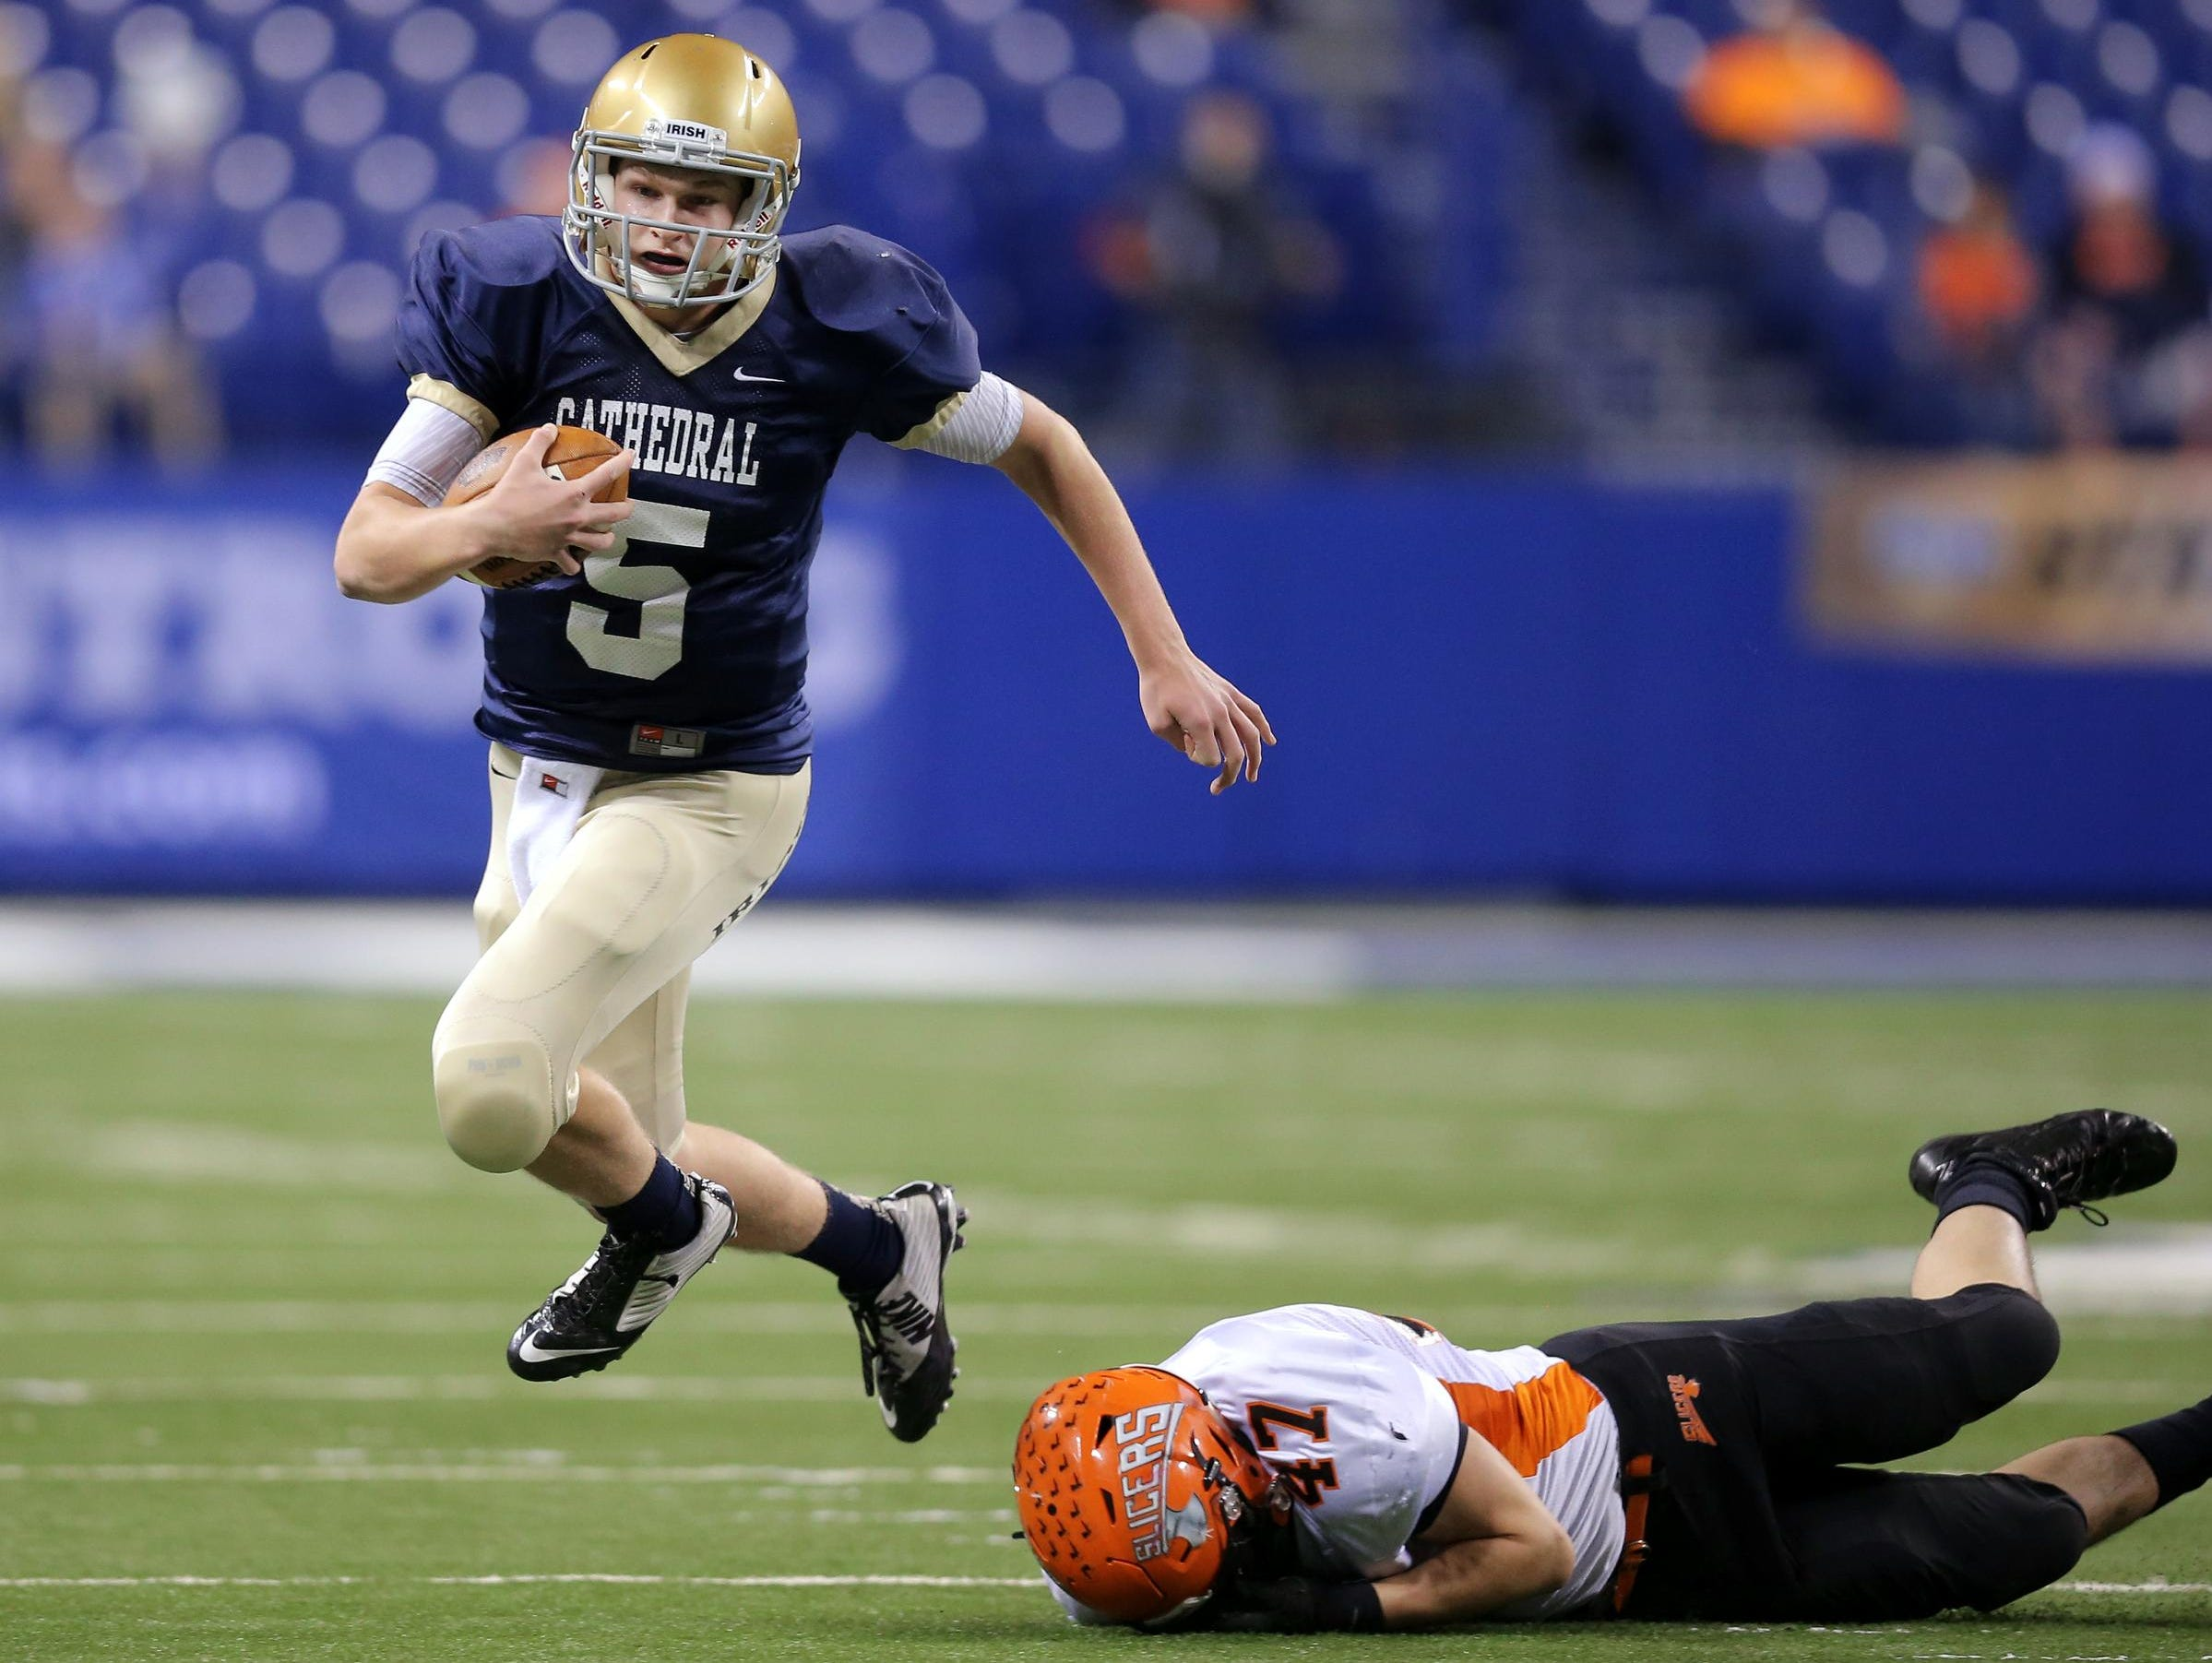 Cathedral quarterback Max Bortenschlager escapes the grasp of LaPorte linebacker Matt Otwinowski during a run in the first half of the game. The Irish defeated LaPorte 56-7 in the IHSAA Class 5A State Football Finals at Lucas Oil Stadium on Saturday, Nov. 29, 2014.